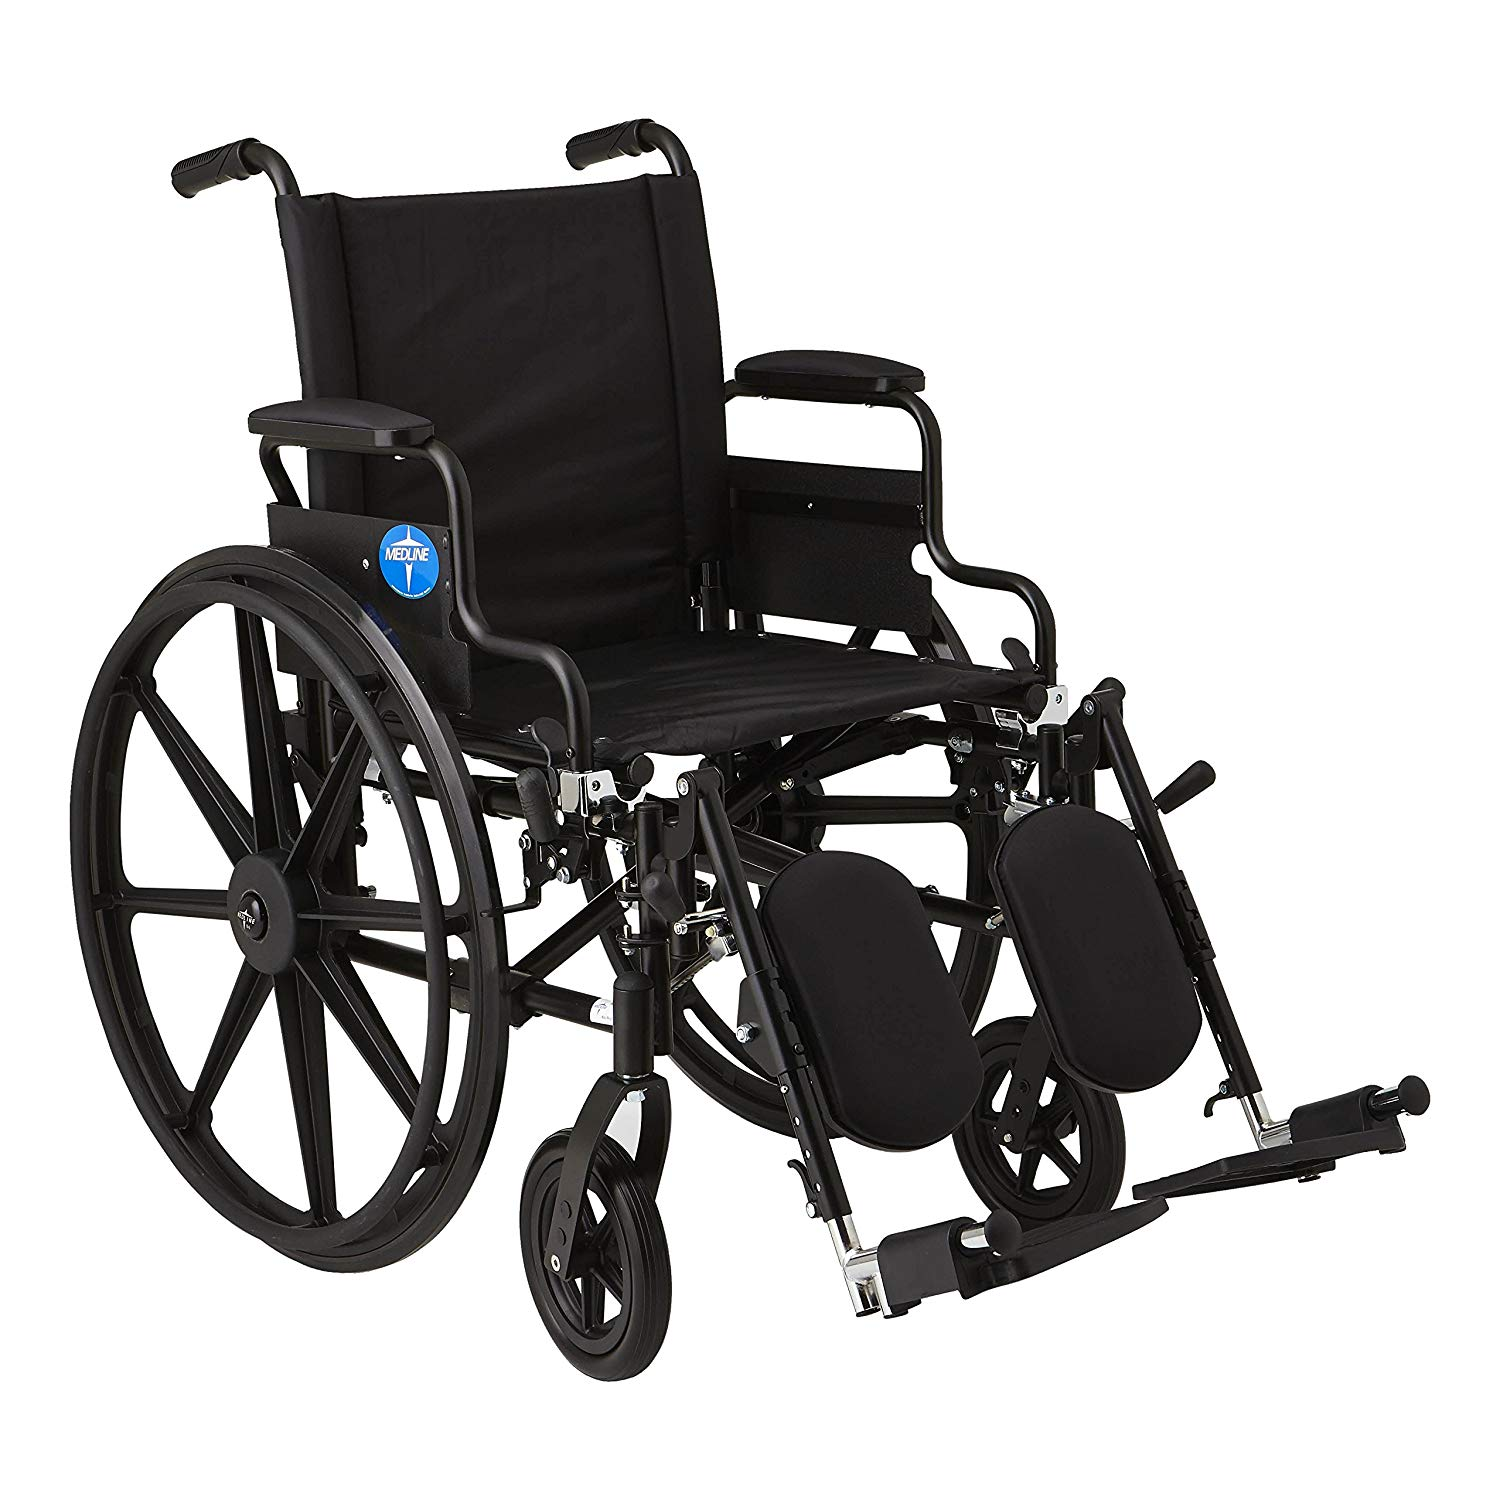 Make Your Life Easier and Mobile by Using Ultra Lightweight Wheelchairs